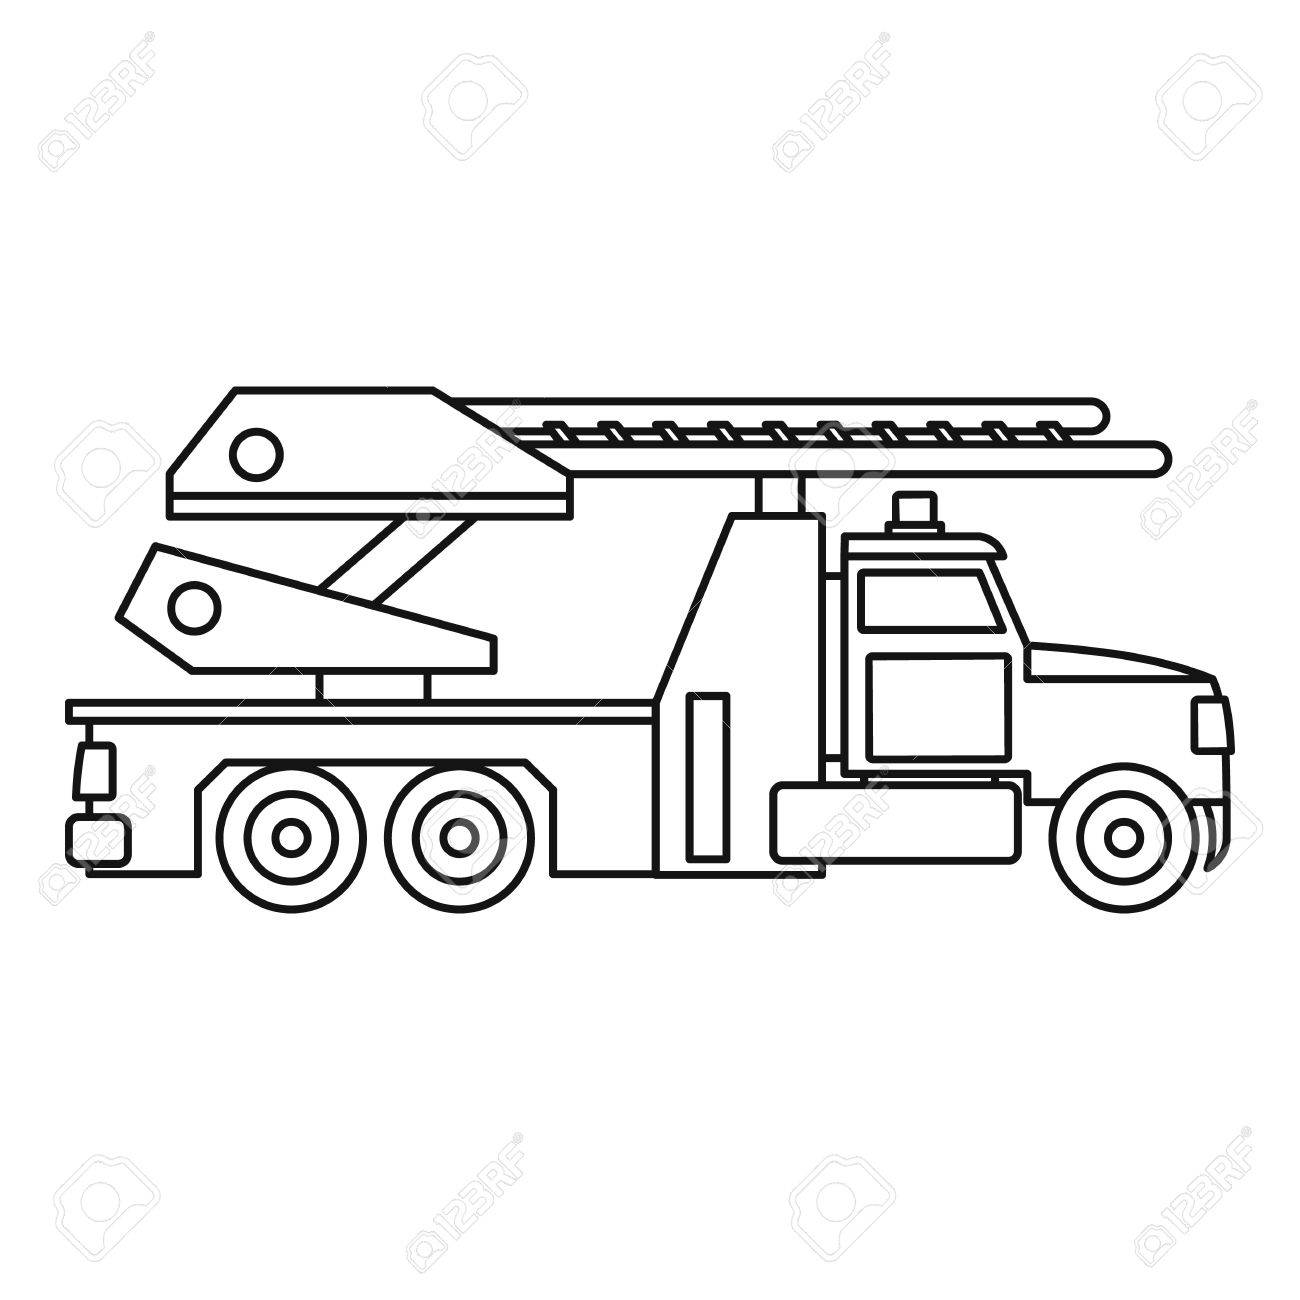 Fire Truck Icon Outline Illustration Of Vector For Web Stock